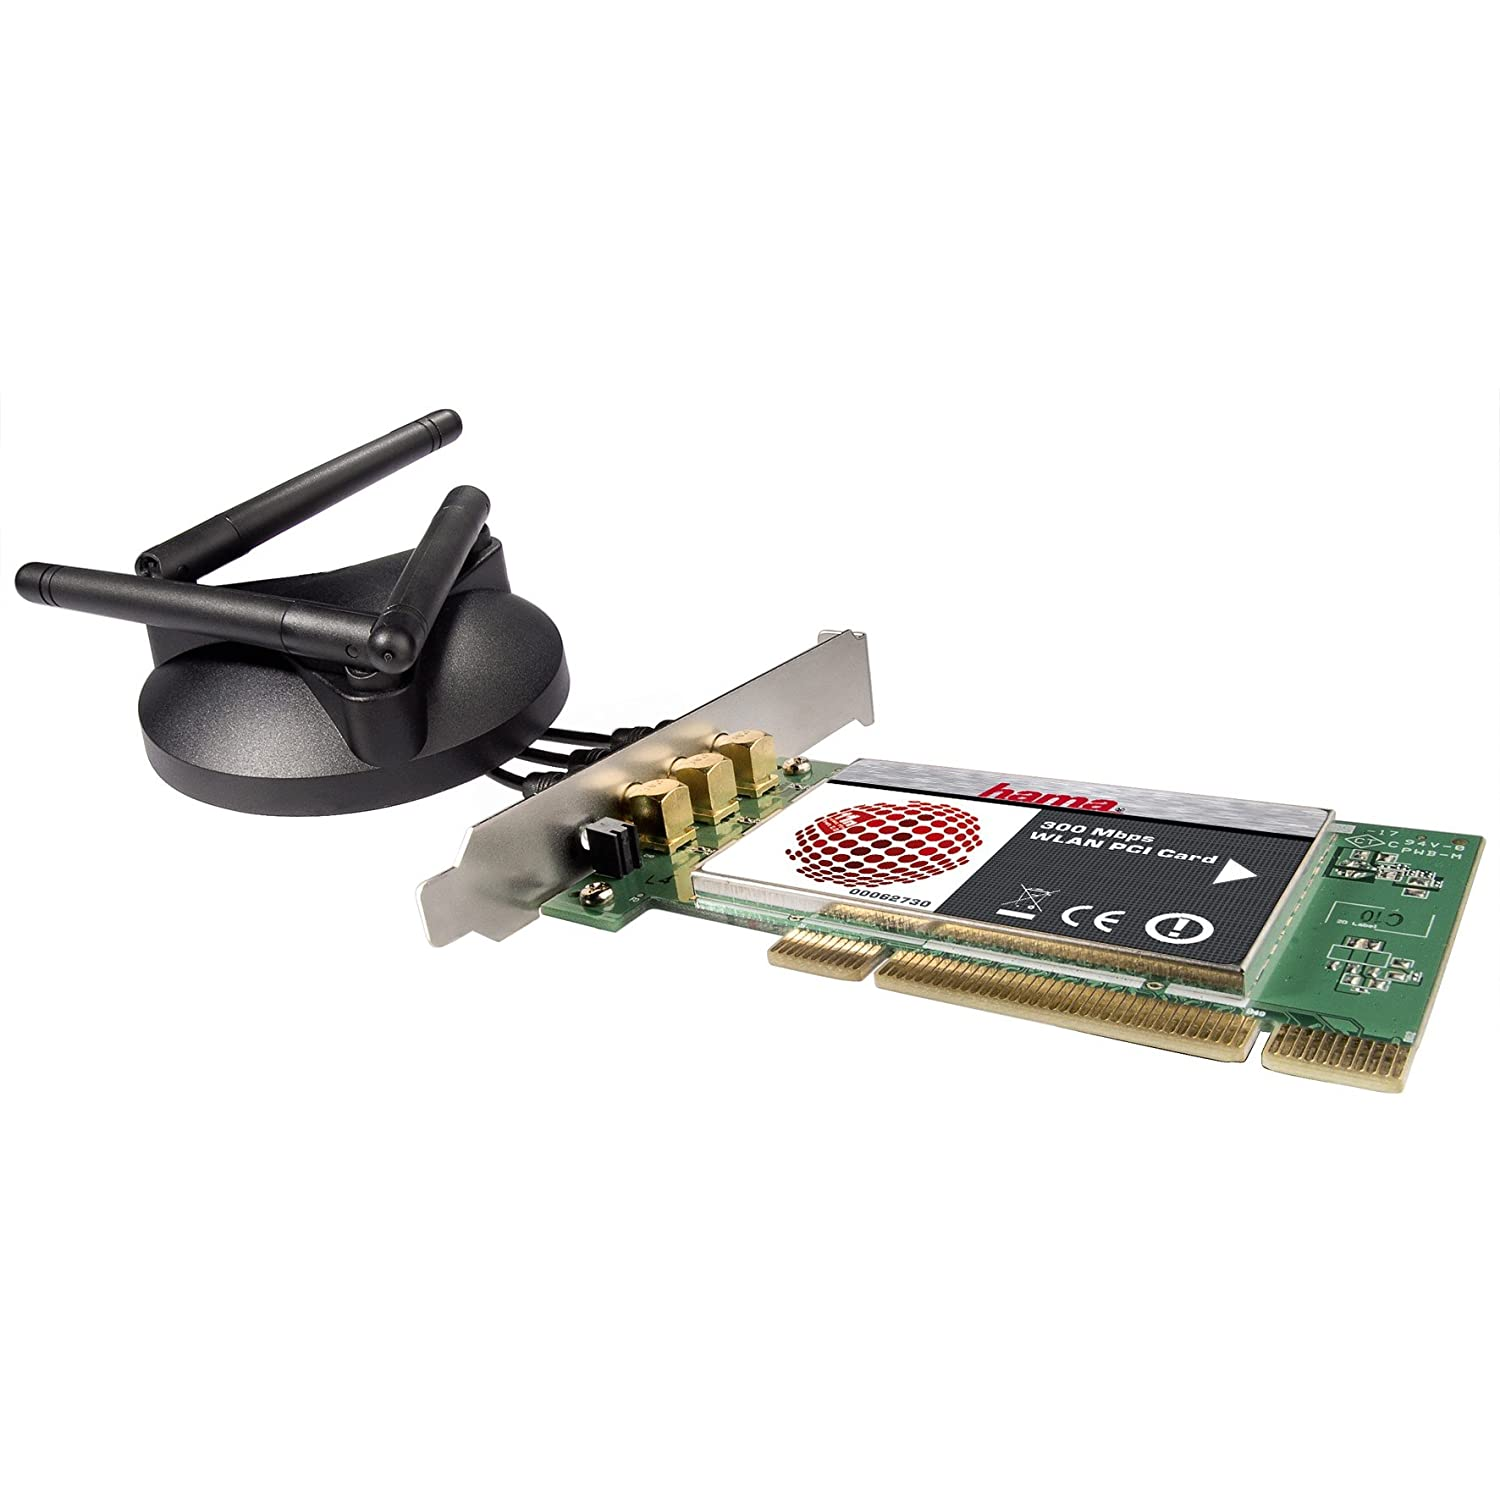 HAMA 54 Mbps Wireless LAN PC-Card Drivers for Windows Download